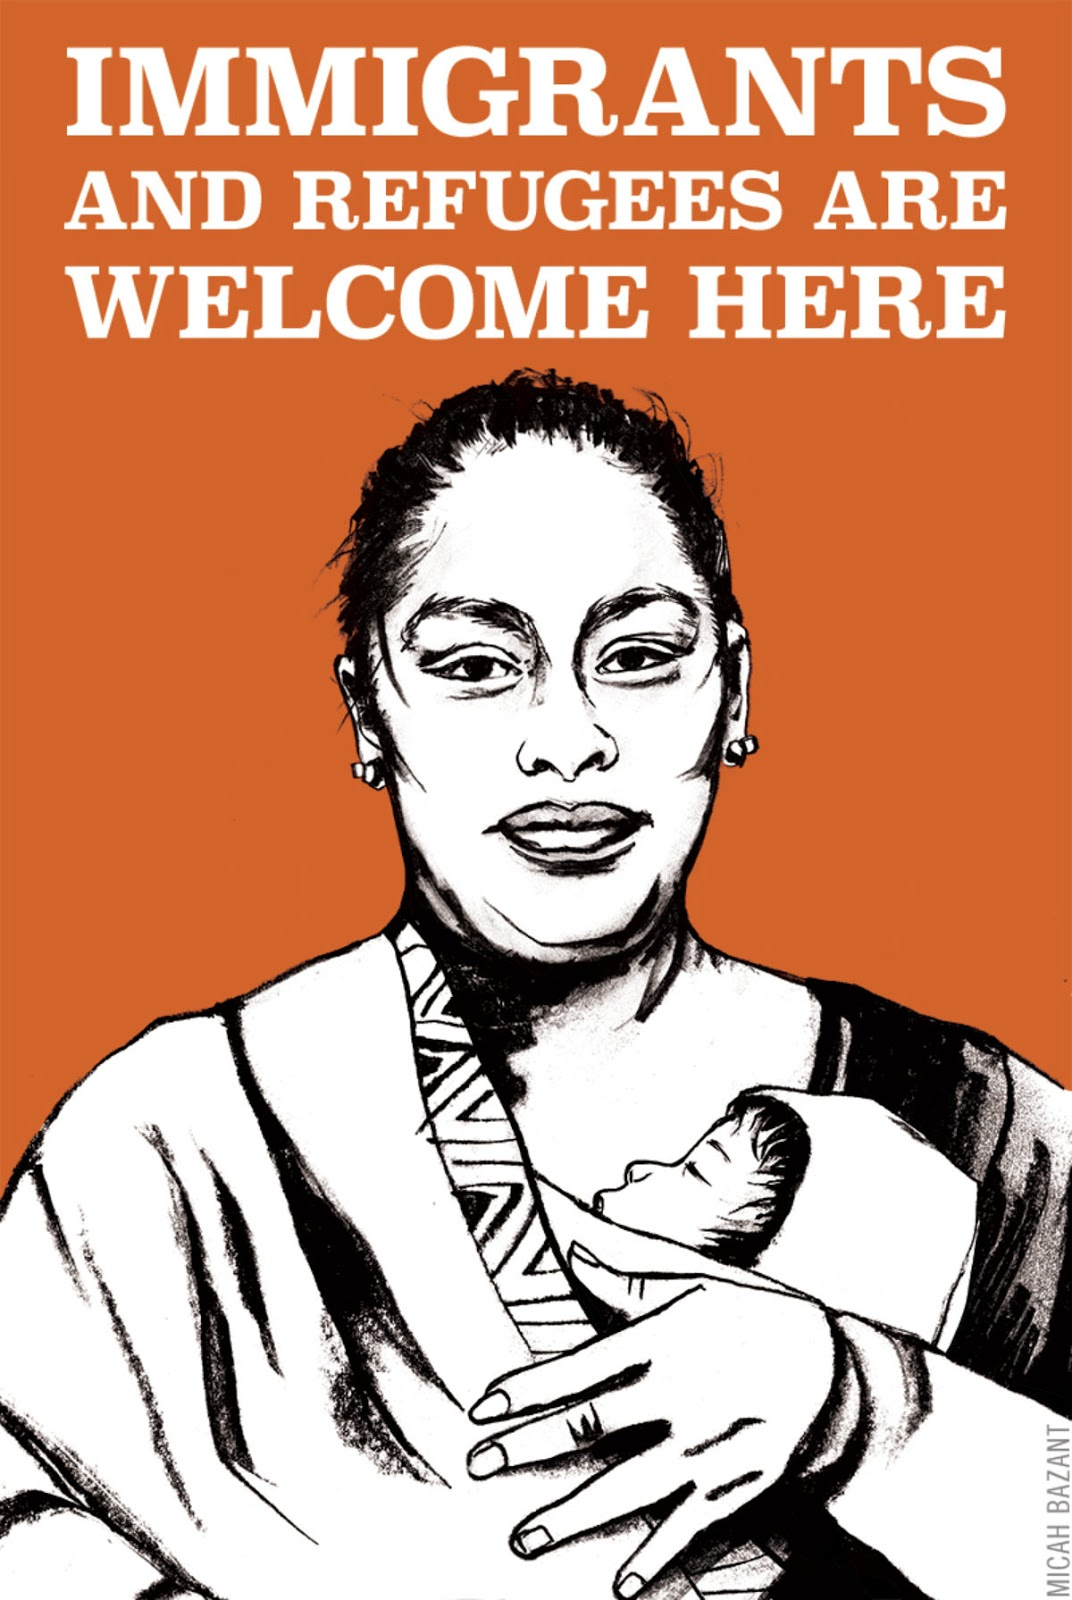 illustrative poster of a woman holding a baby and the words immigrants and refugees are welcome here